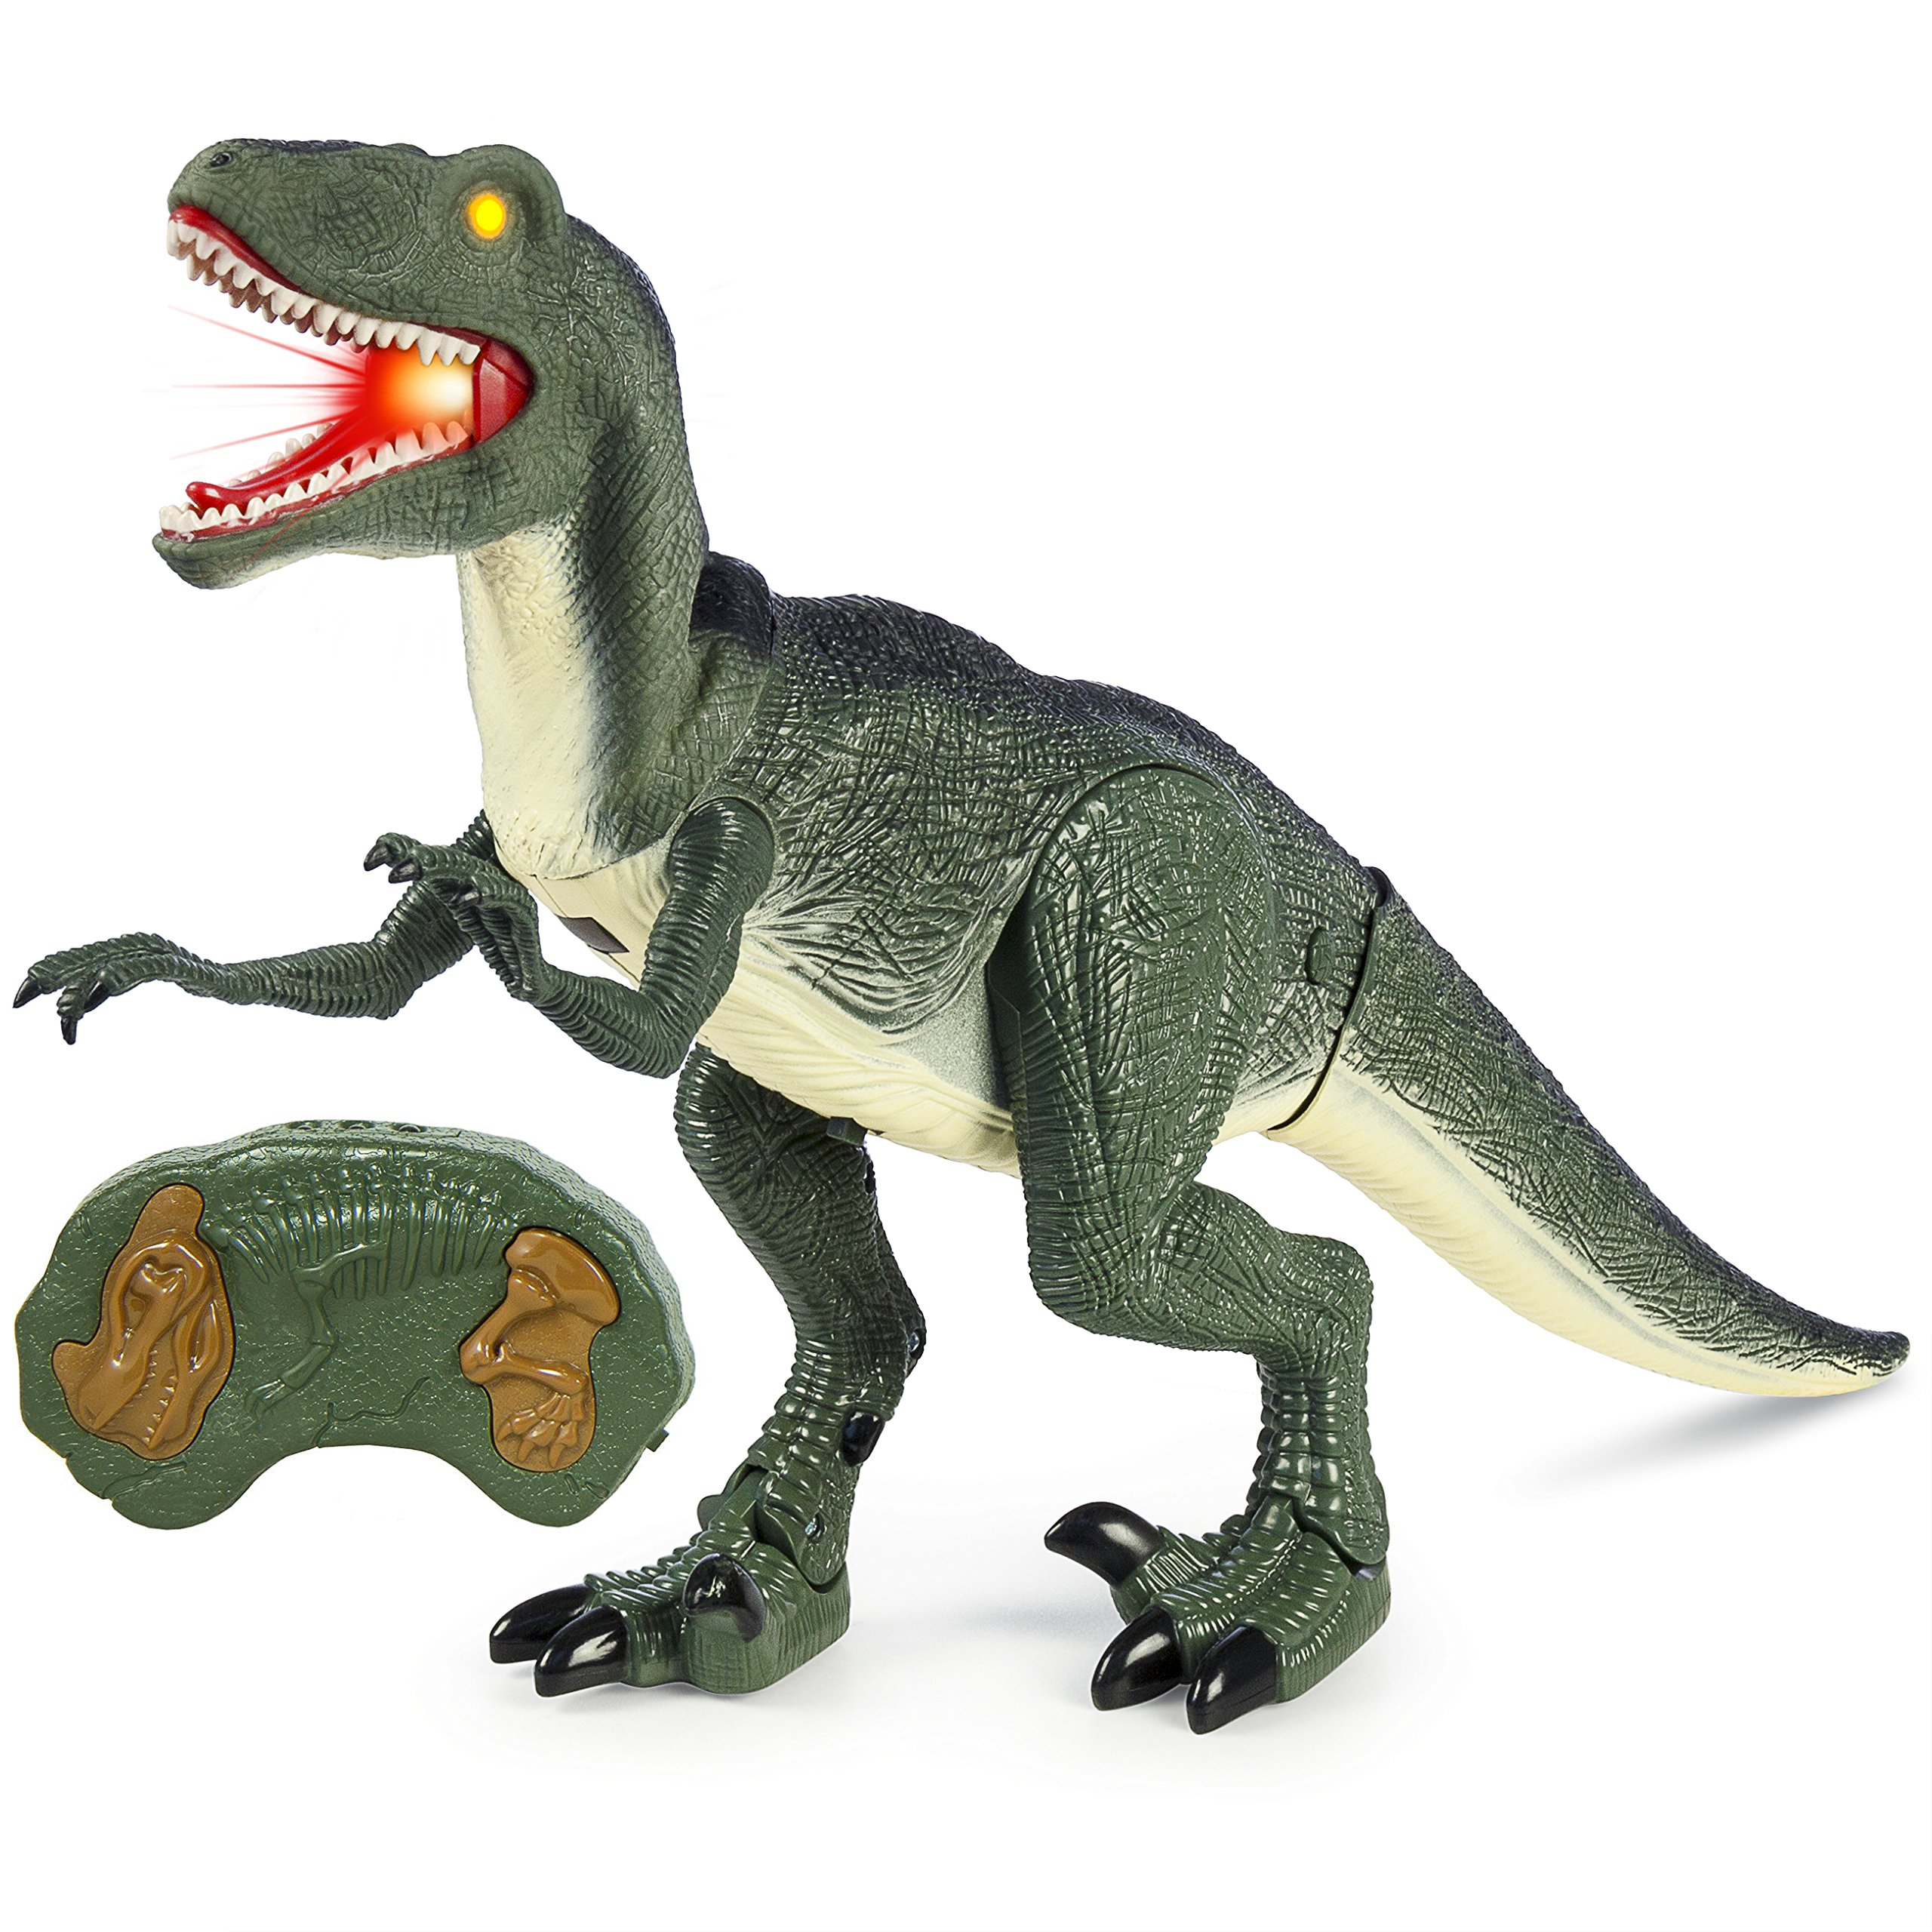 Best Choice Products 21in Kids Large Walking Moving Velociraptor Dinosaur Animal RC Toy Figure w/ Lights, Sound - Green